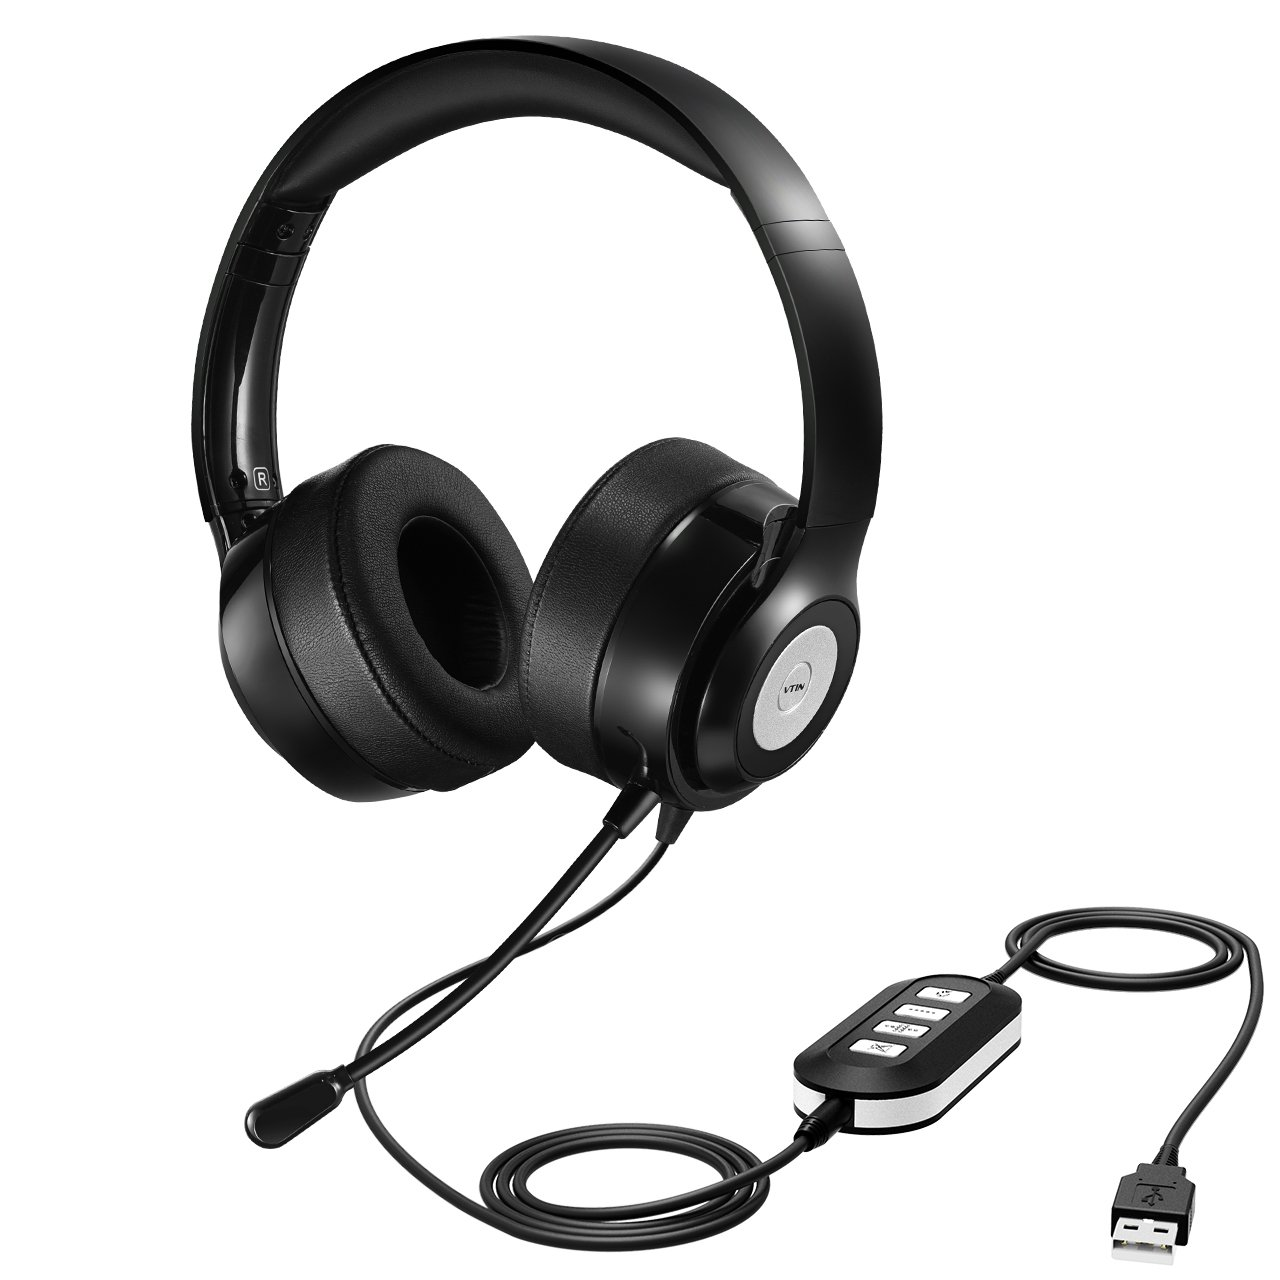 TopRay USB Headset/ 3.5mm Computer Headset with Microphone Noise Cancelling, Lightweight PC Headset Wired Headphones